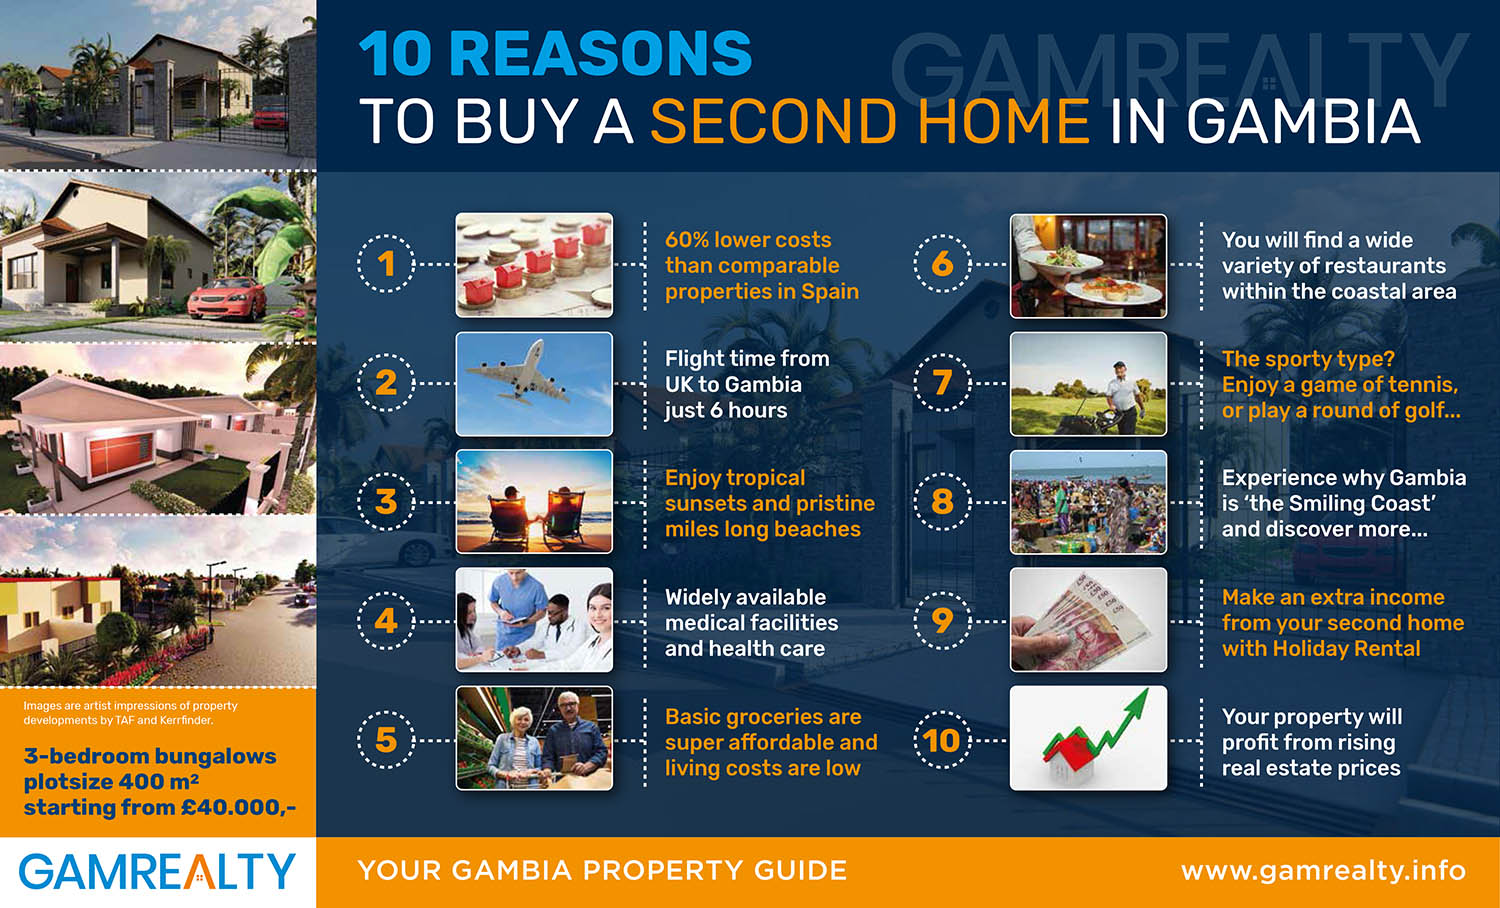 10 reasons to buy a second home in gambia